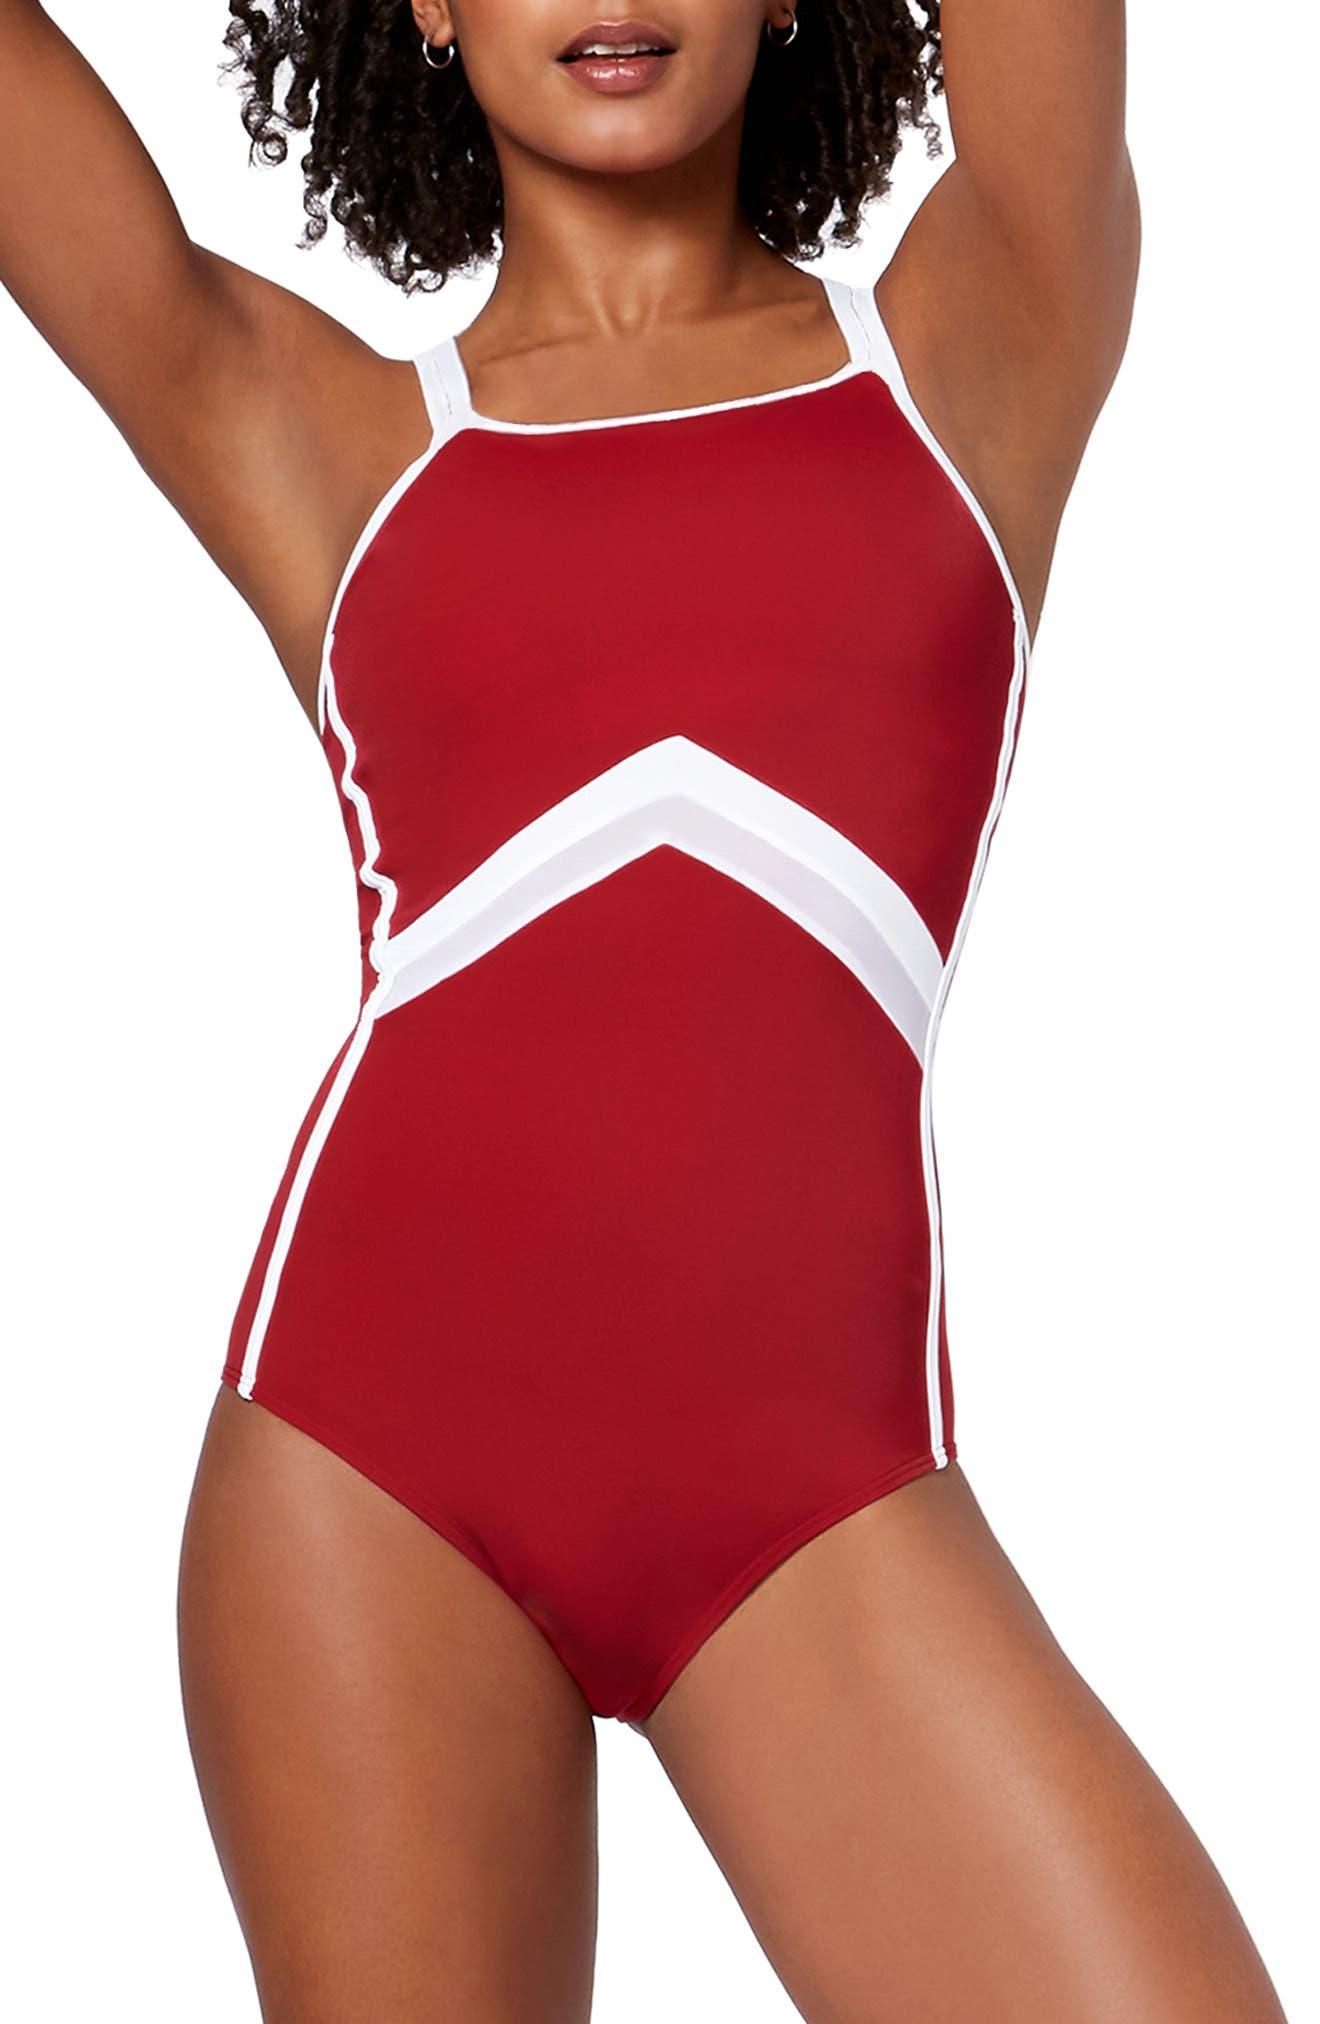 Butterfly One-Piece Swimsuit,                             Main thumbnail 1, color,                             600